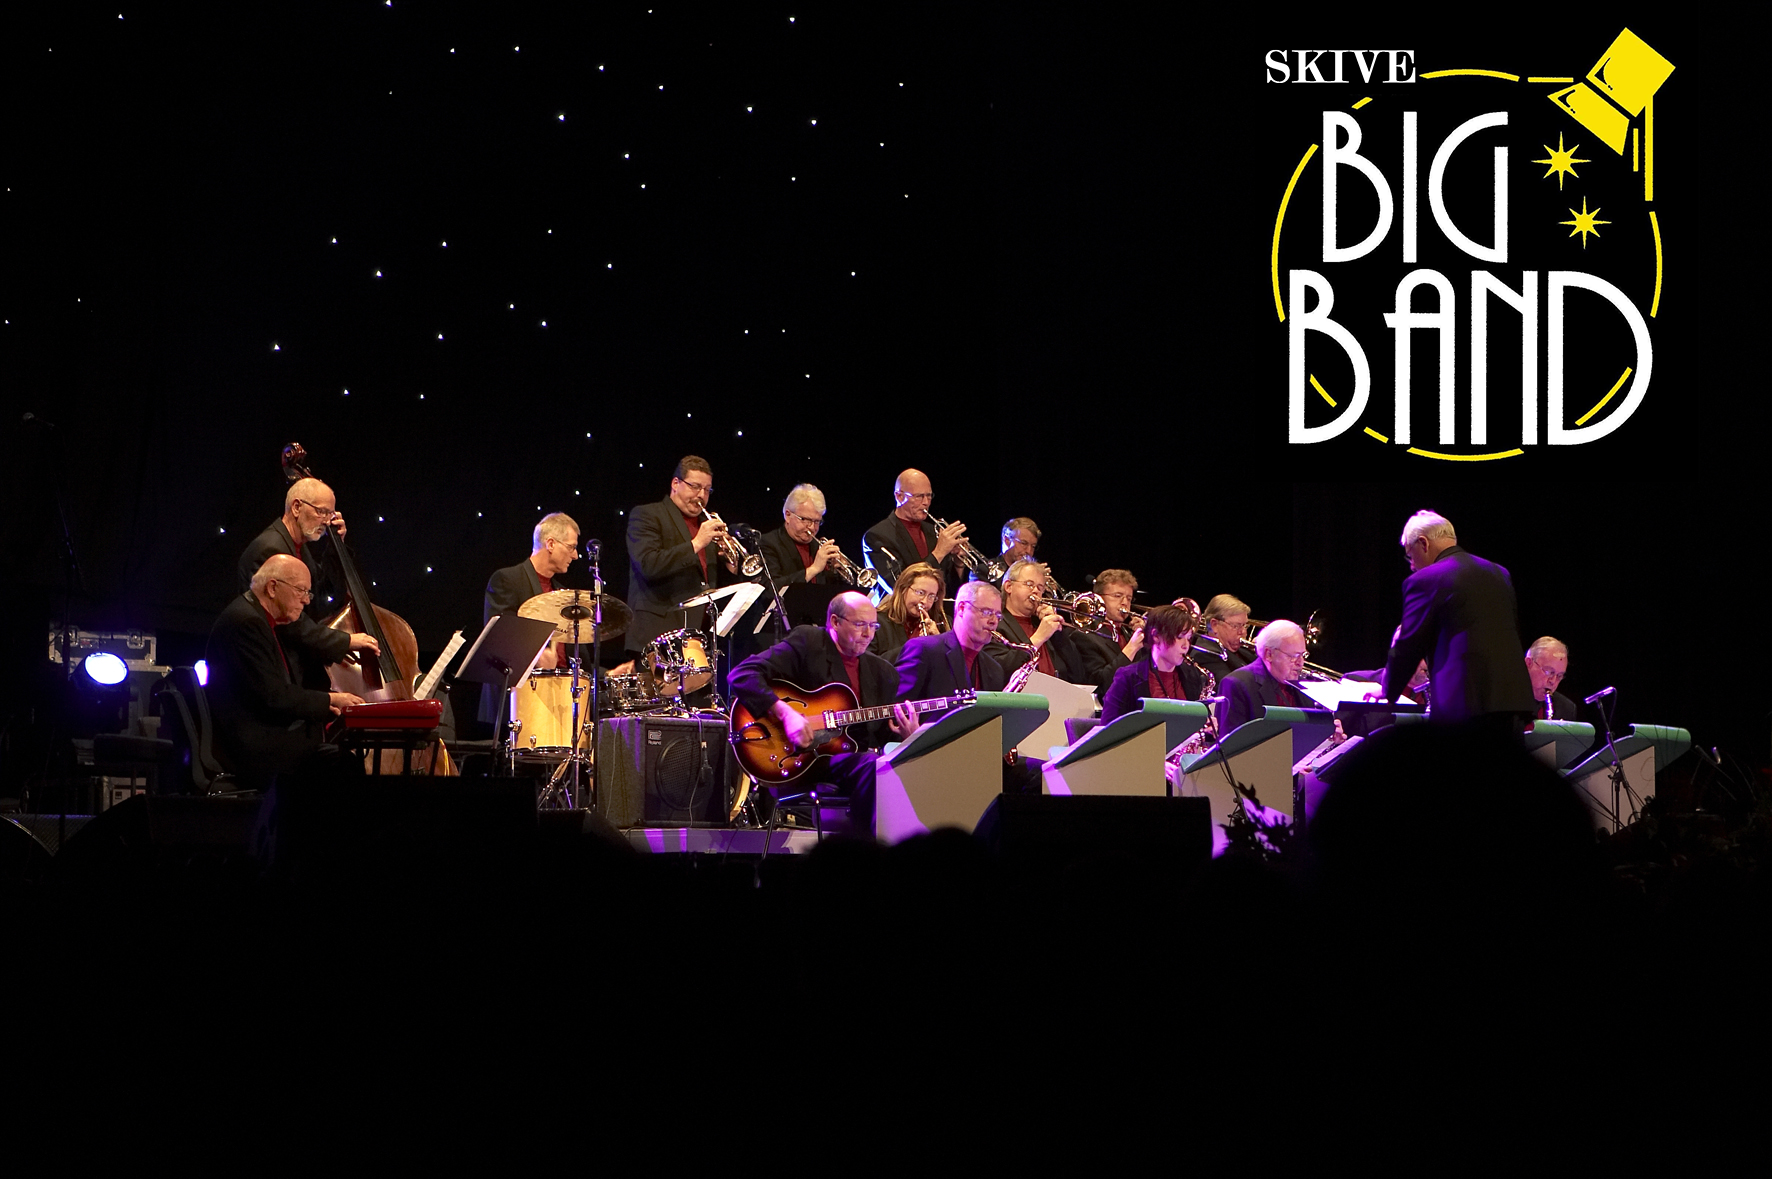 Skive Big Band